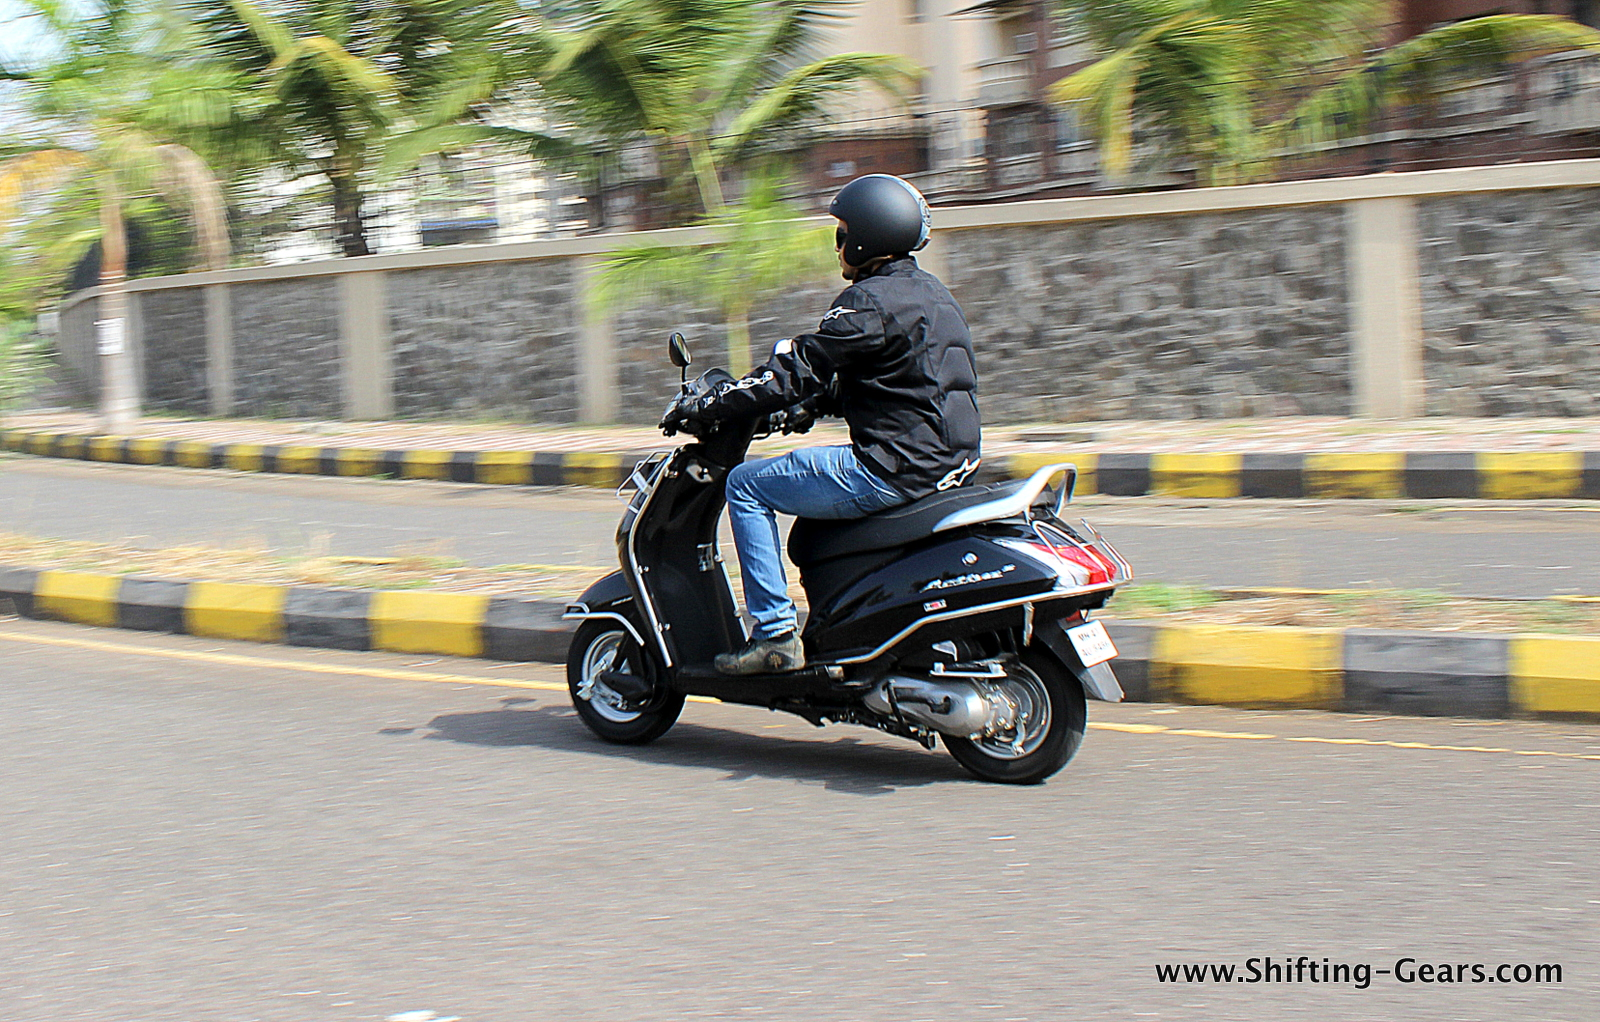 hmsi-honda-activa-3g-scooter-review-04